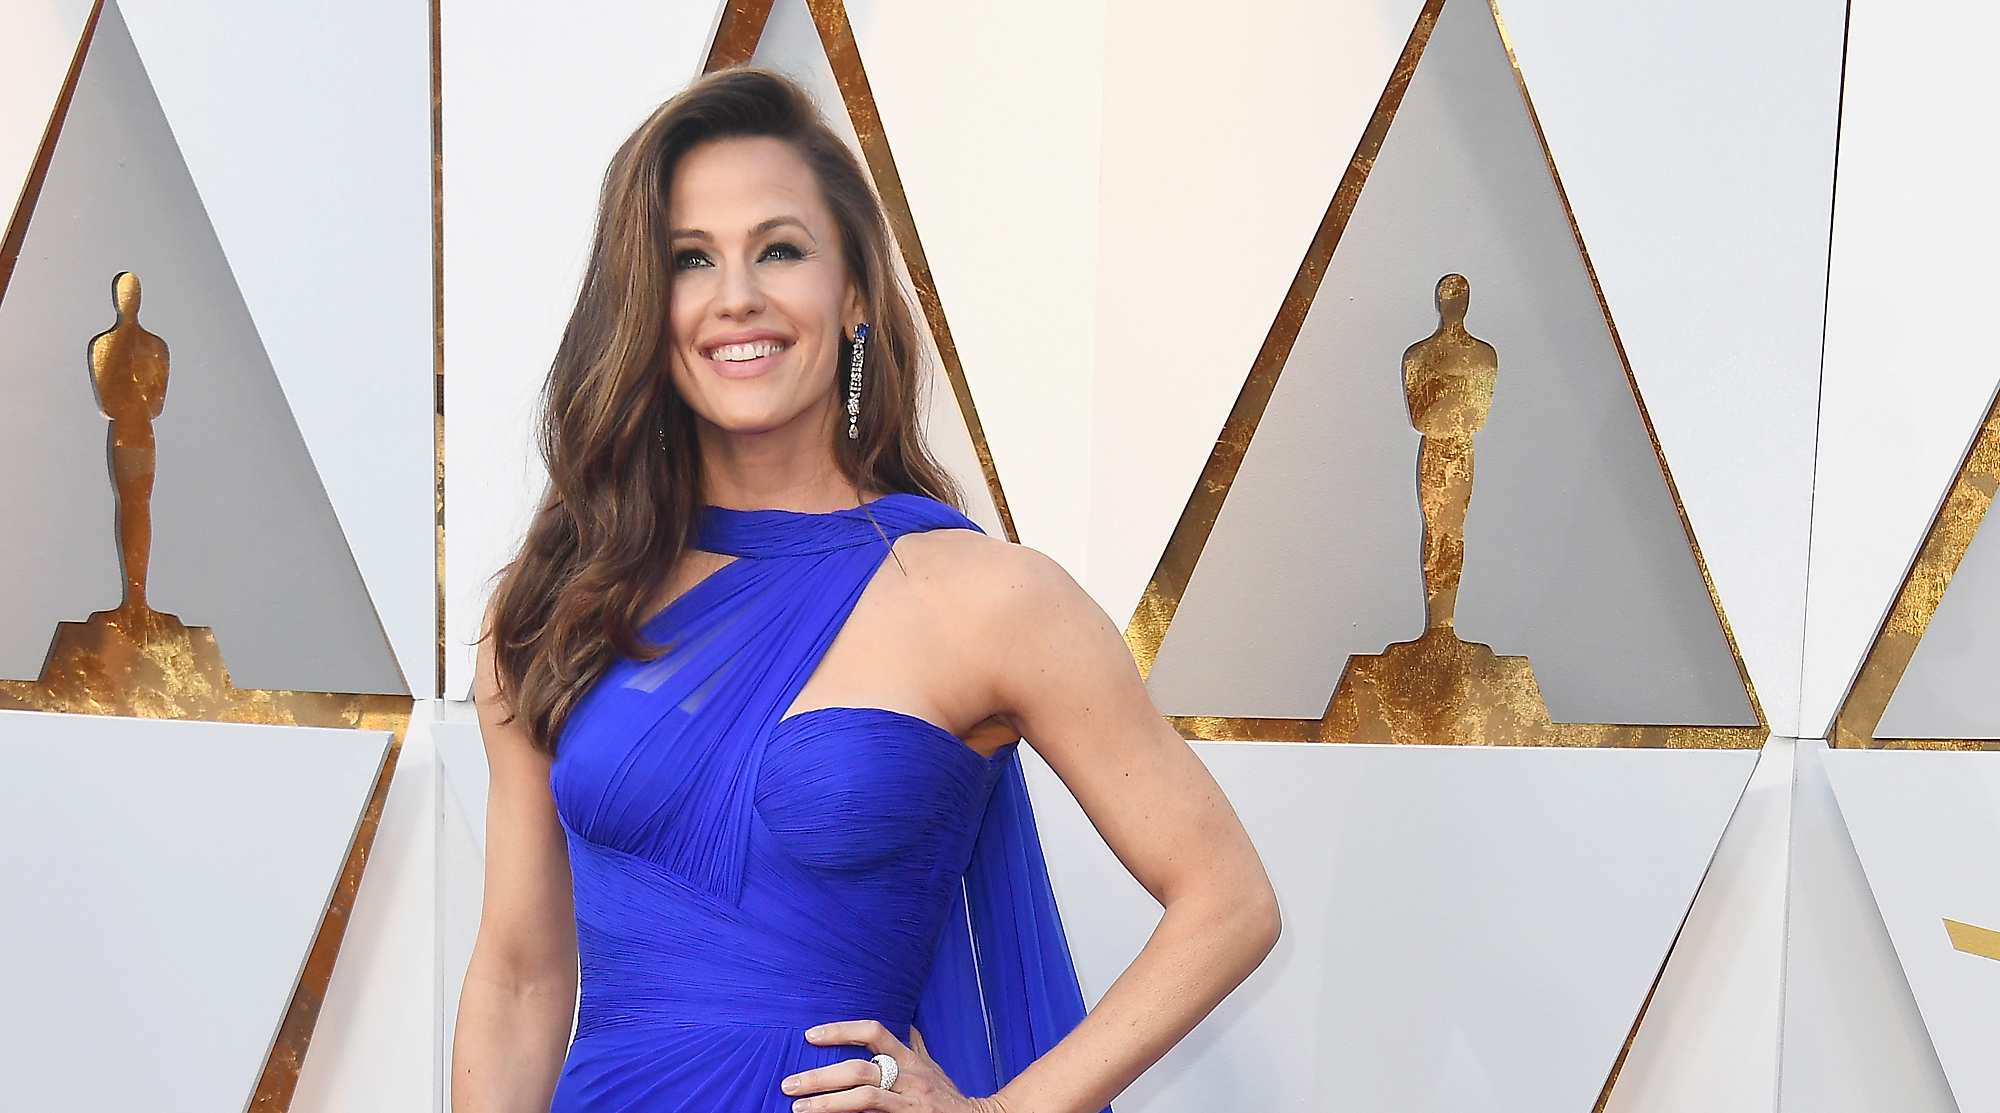 Jennifer Garner Just Responded to Her Viral Oscars Meme in the Most Hilarious Way